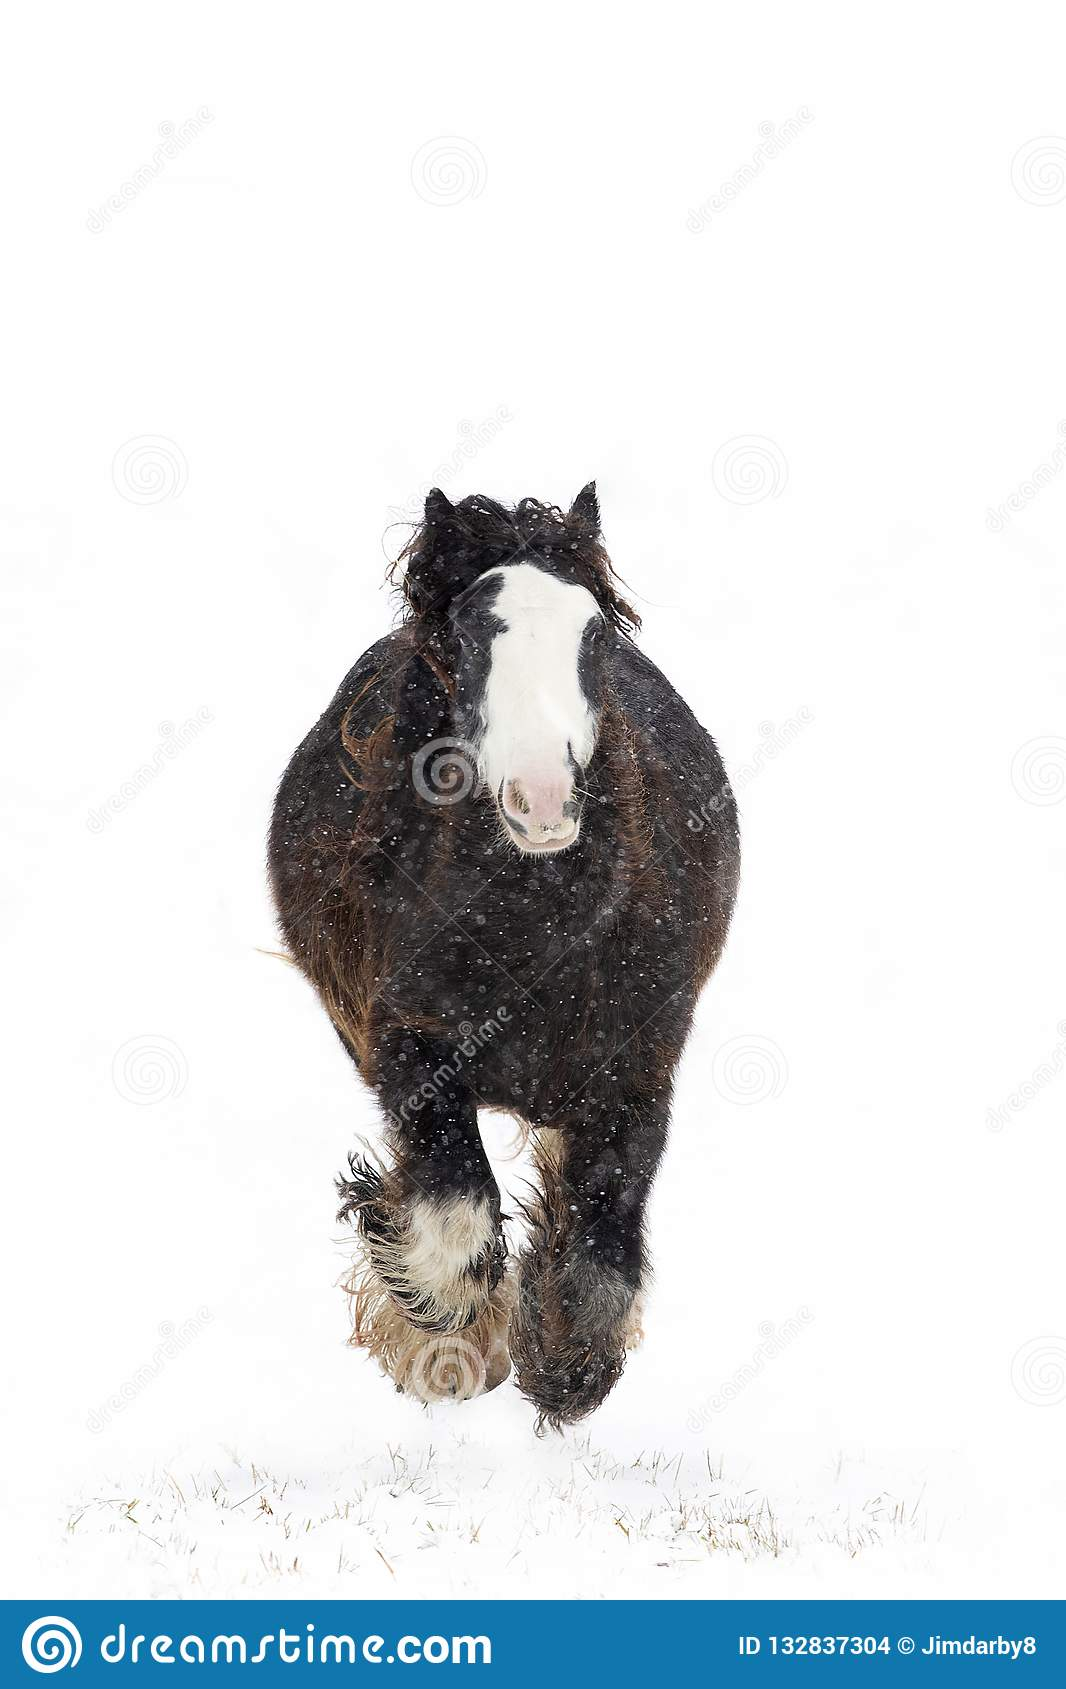 A Clydesdale Horse Running In The Falling Snow In Winter In Canada Stock Photo Image Of Dramatic Galloping 132837304